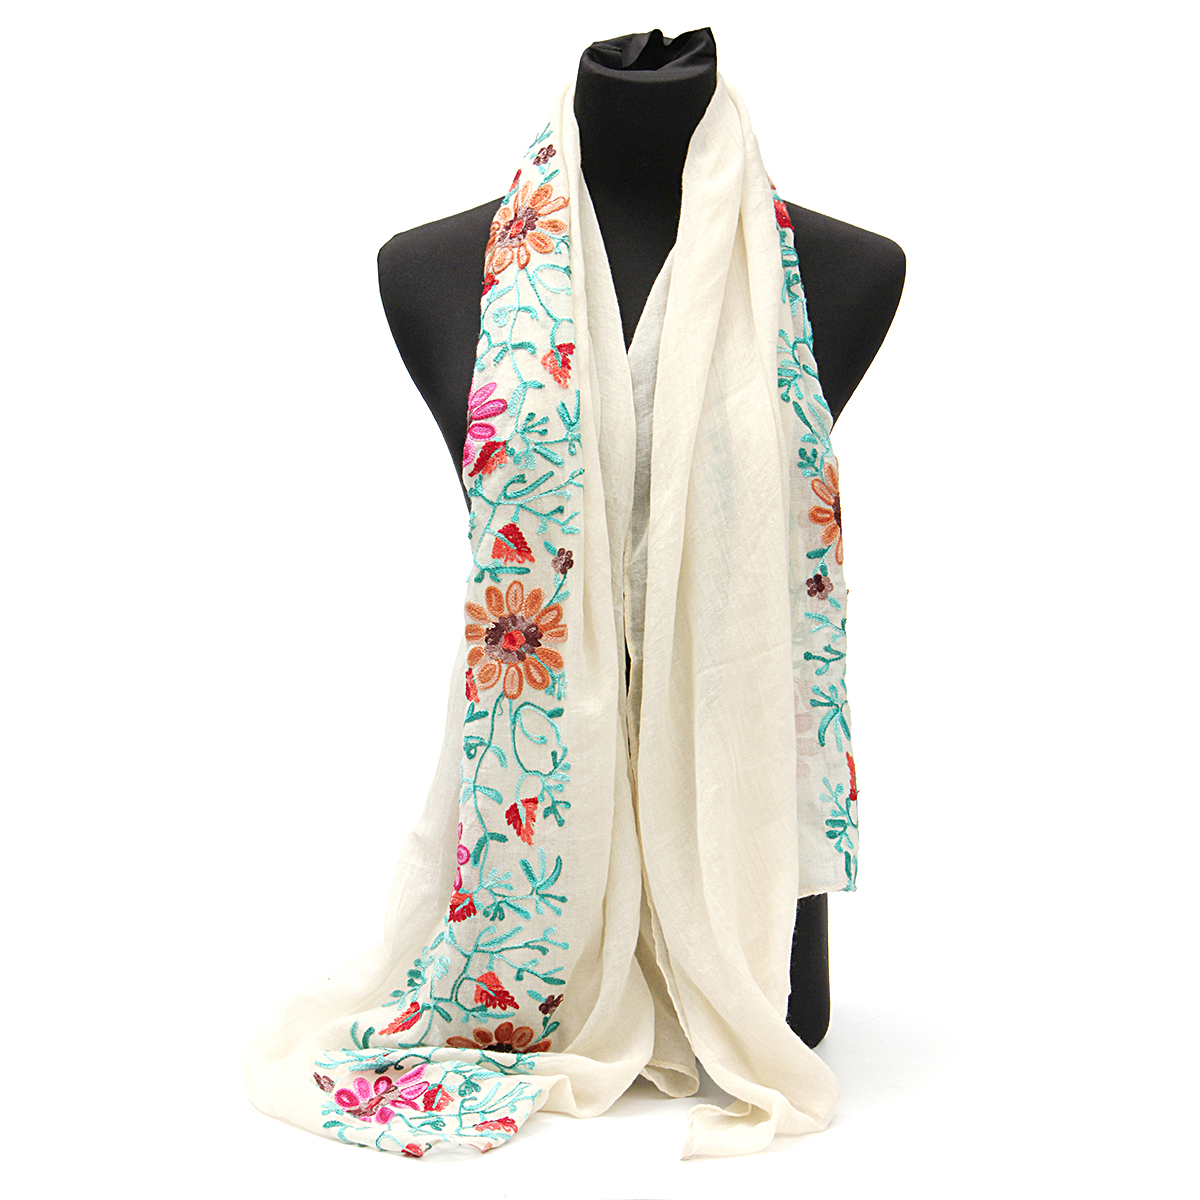 Find a great selection of scarves & wraps at thrushop-9b4y6tny.ga Browse all scarves, wraps & shawls in the latest collection. Free shipping & returns.